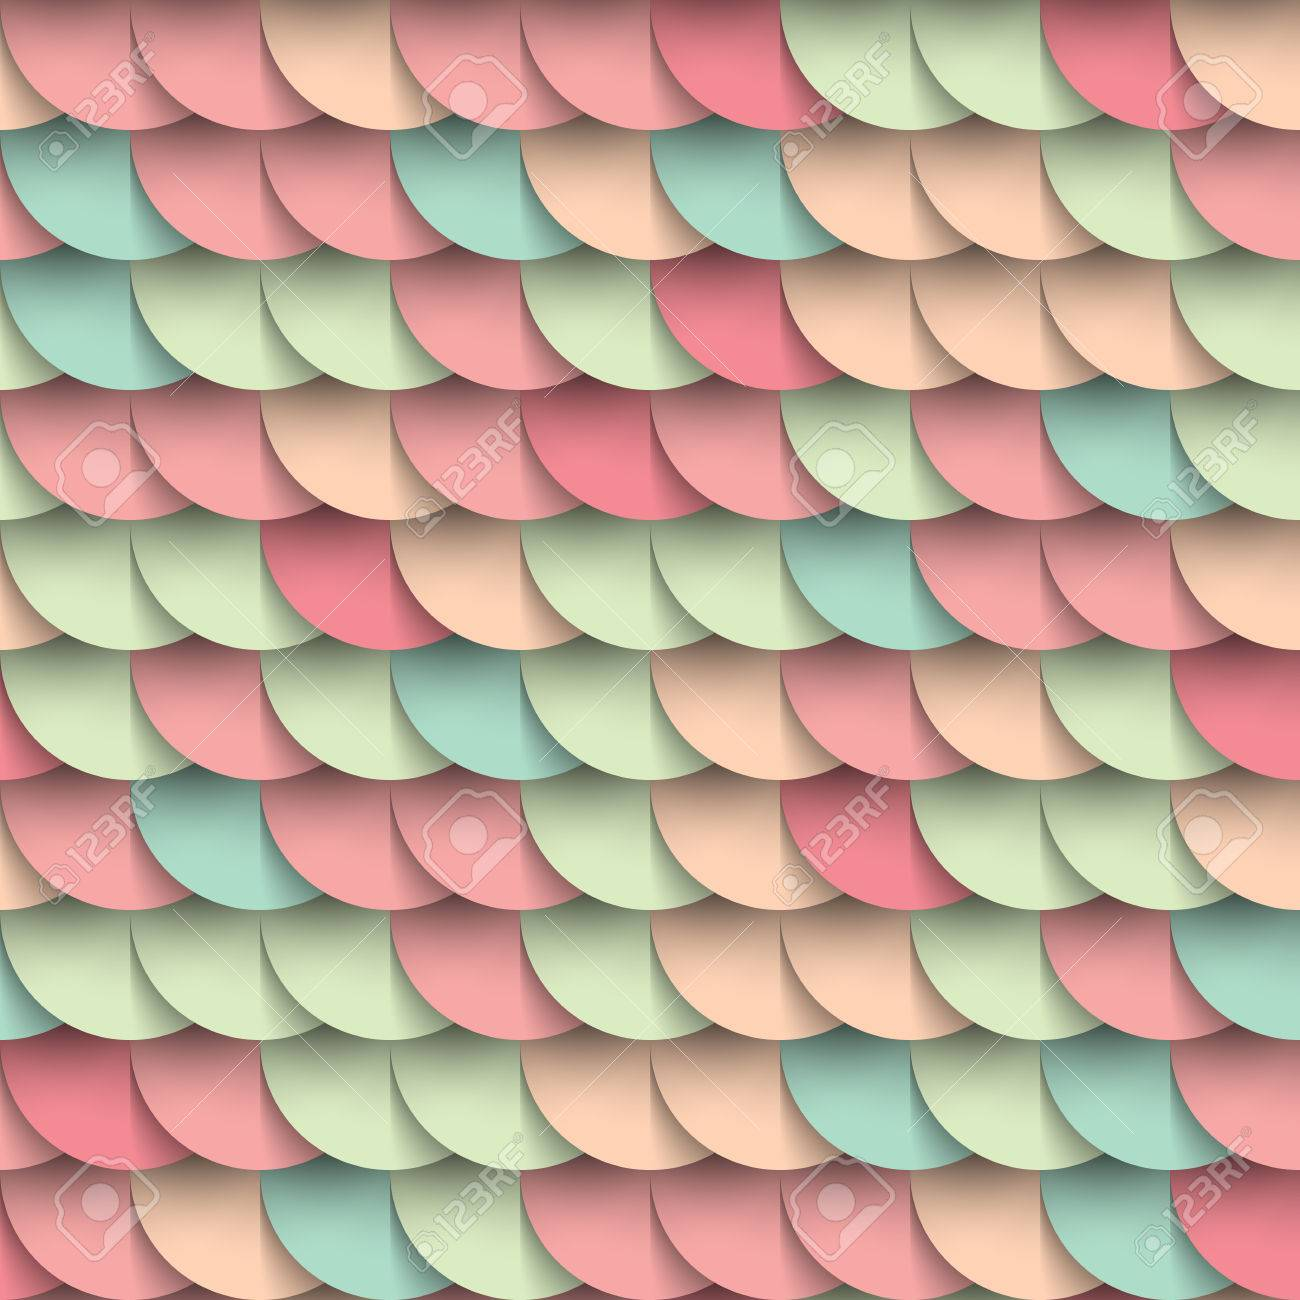 Pastel shades circles geometric shape multicolored seamless pattern,  varicoloured background, mockup wrapping cover decoration